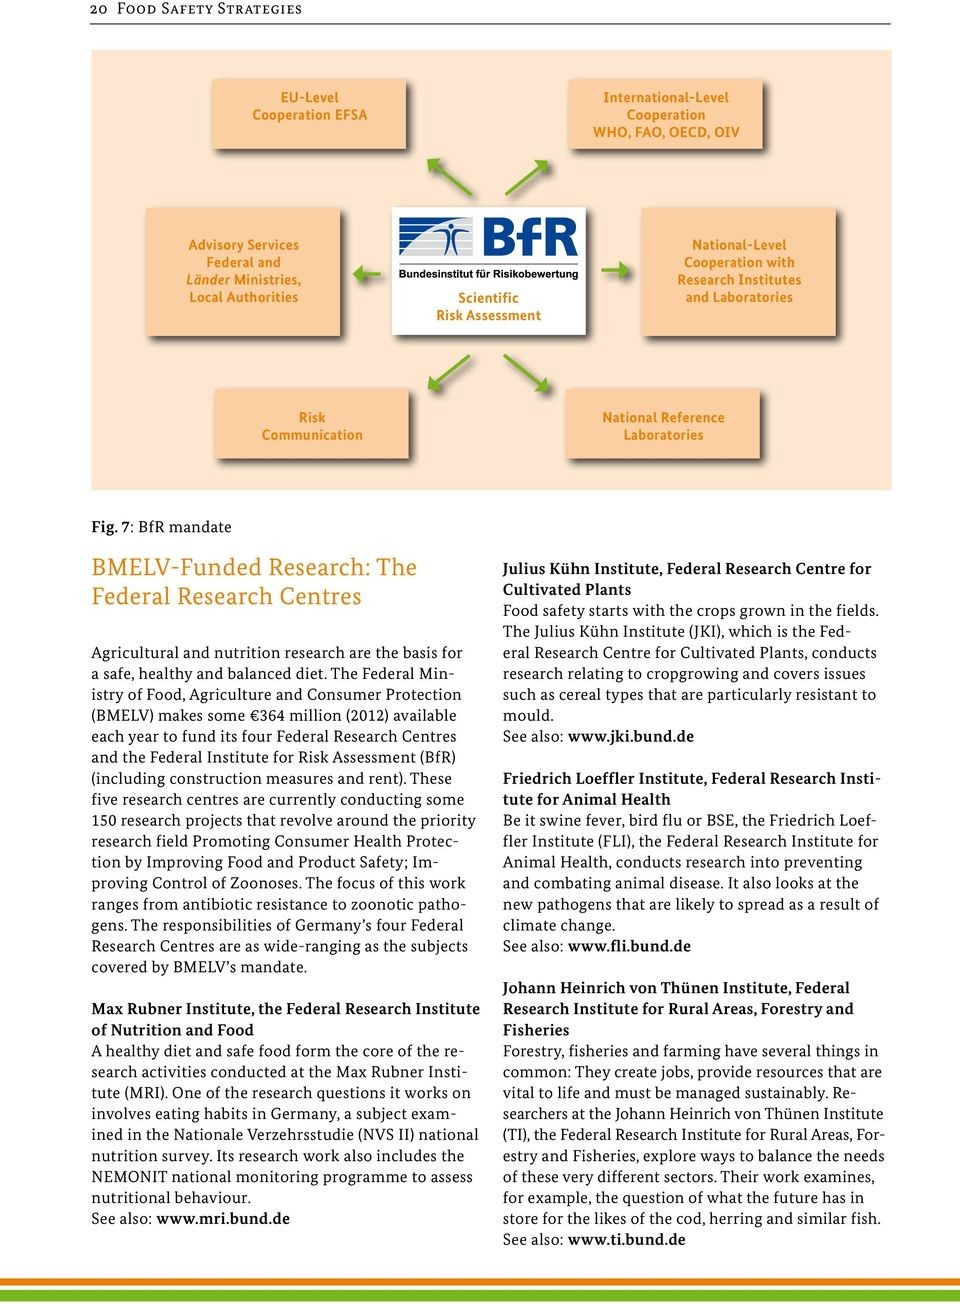 7: BfR mandate BMELV-Funded Research: The Federal Research Centres Agricultural and nutrition research are the basis for a safe, healthy and balanced diet.